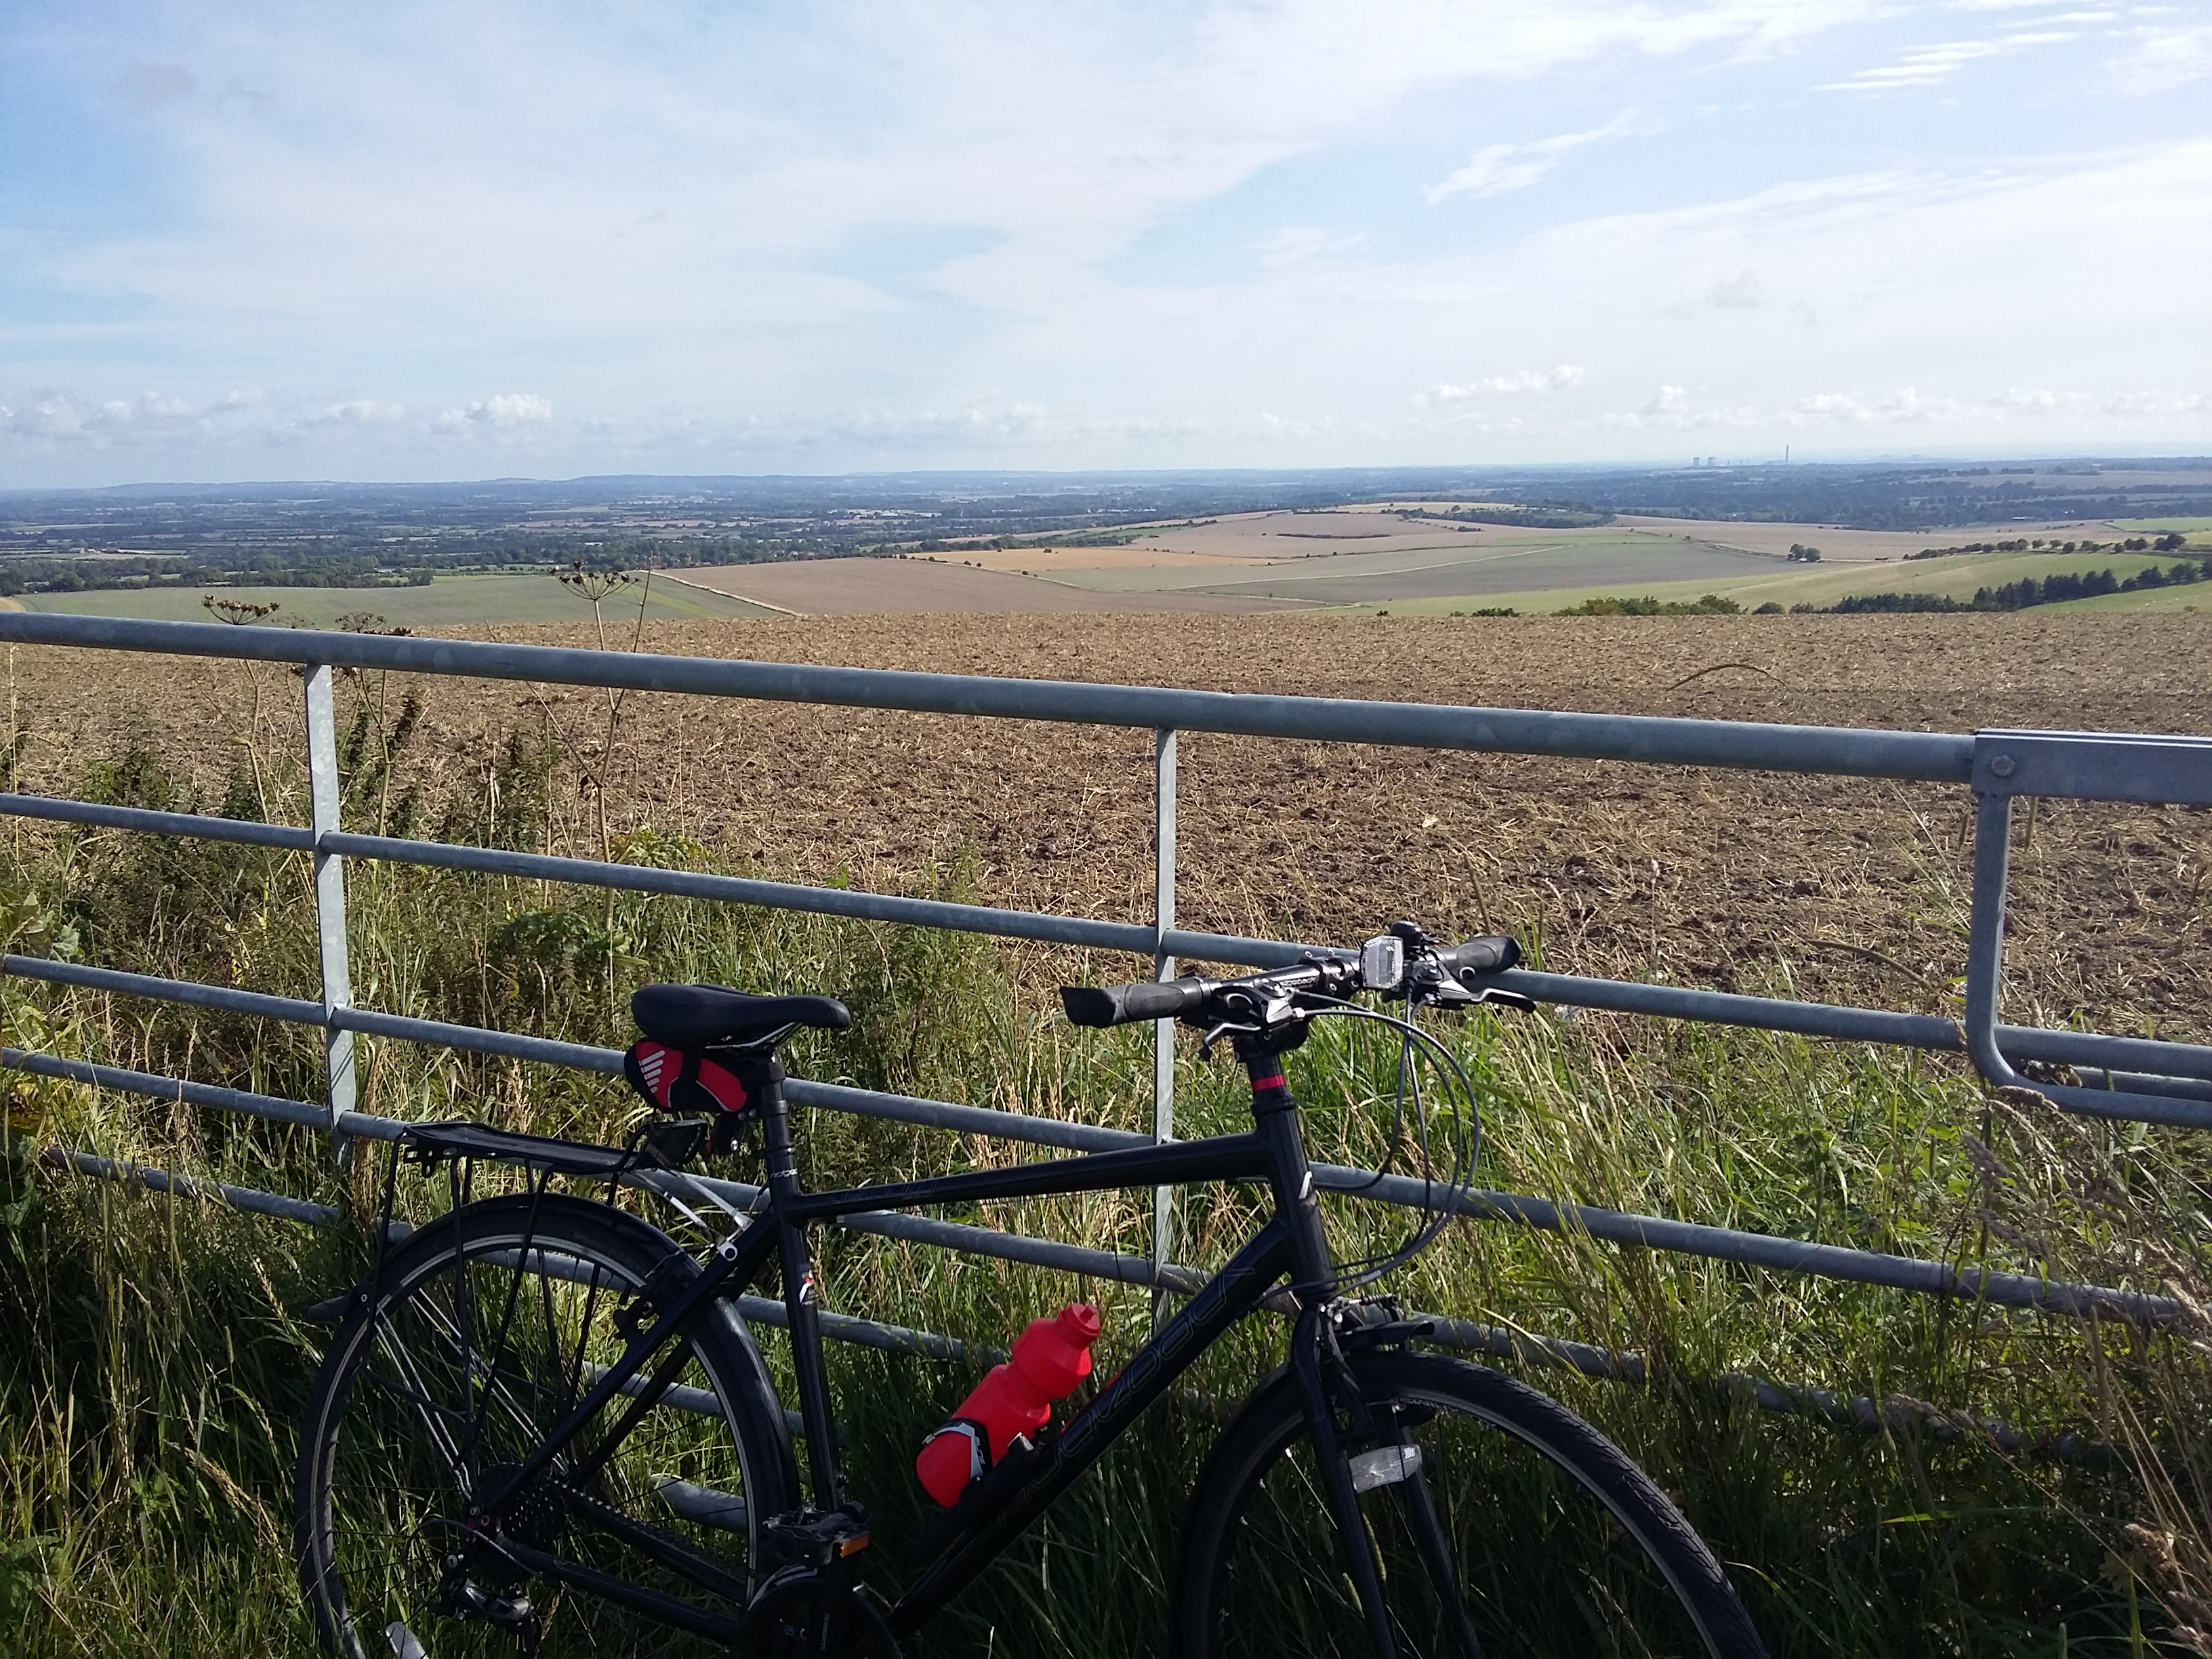 Cycling from Oxford to the south coast